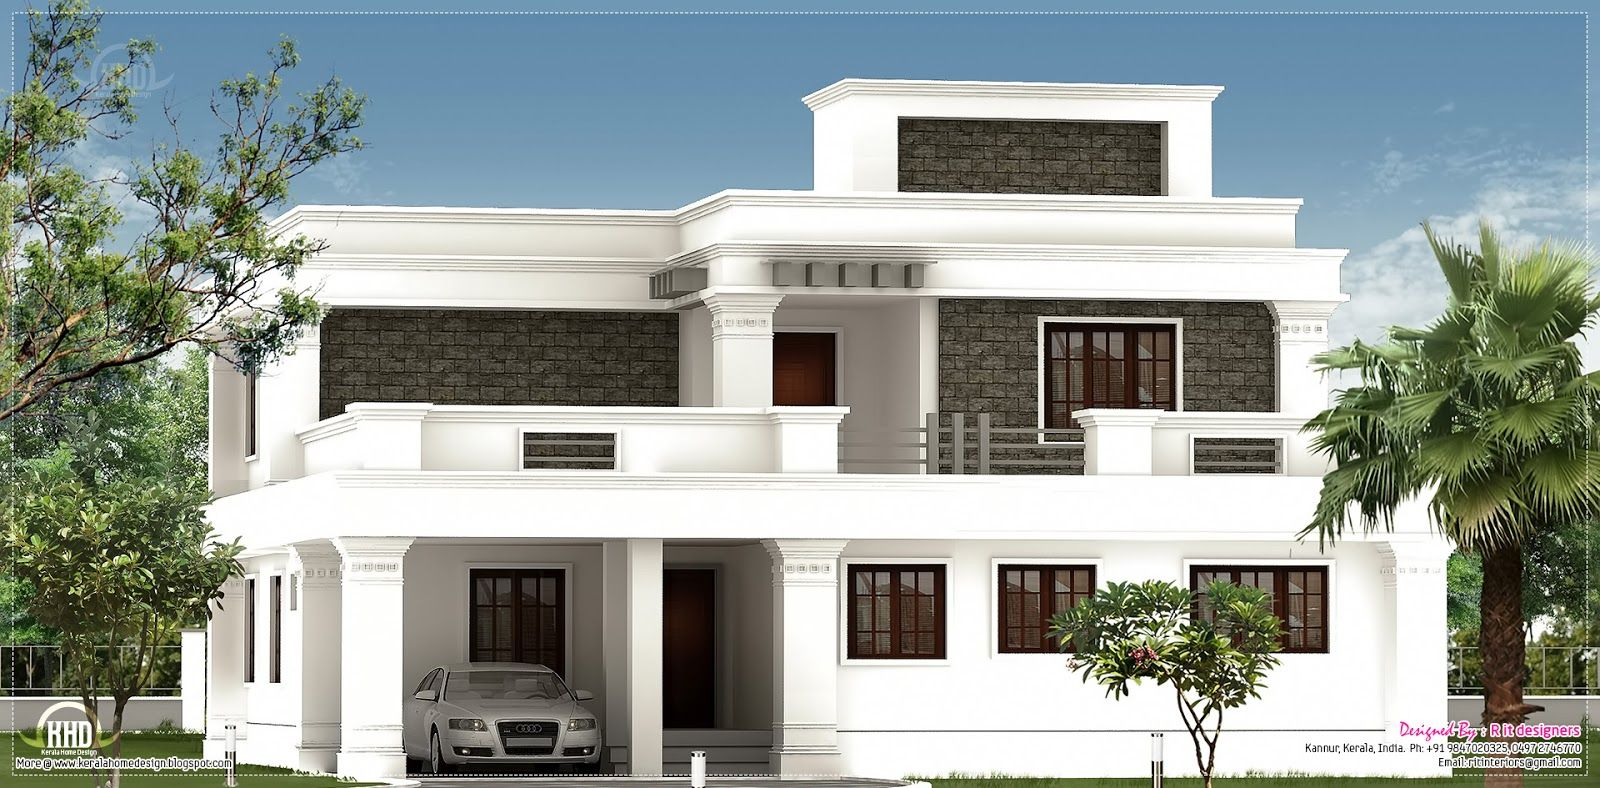 Flat roof homes designs flat roof villa exterior in 2400 for House design outside view